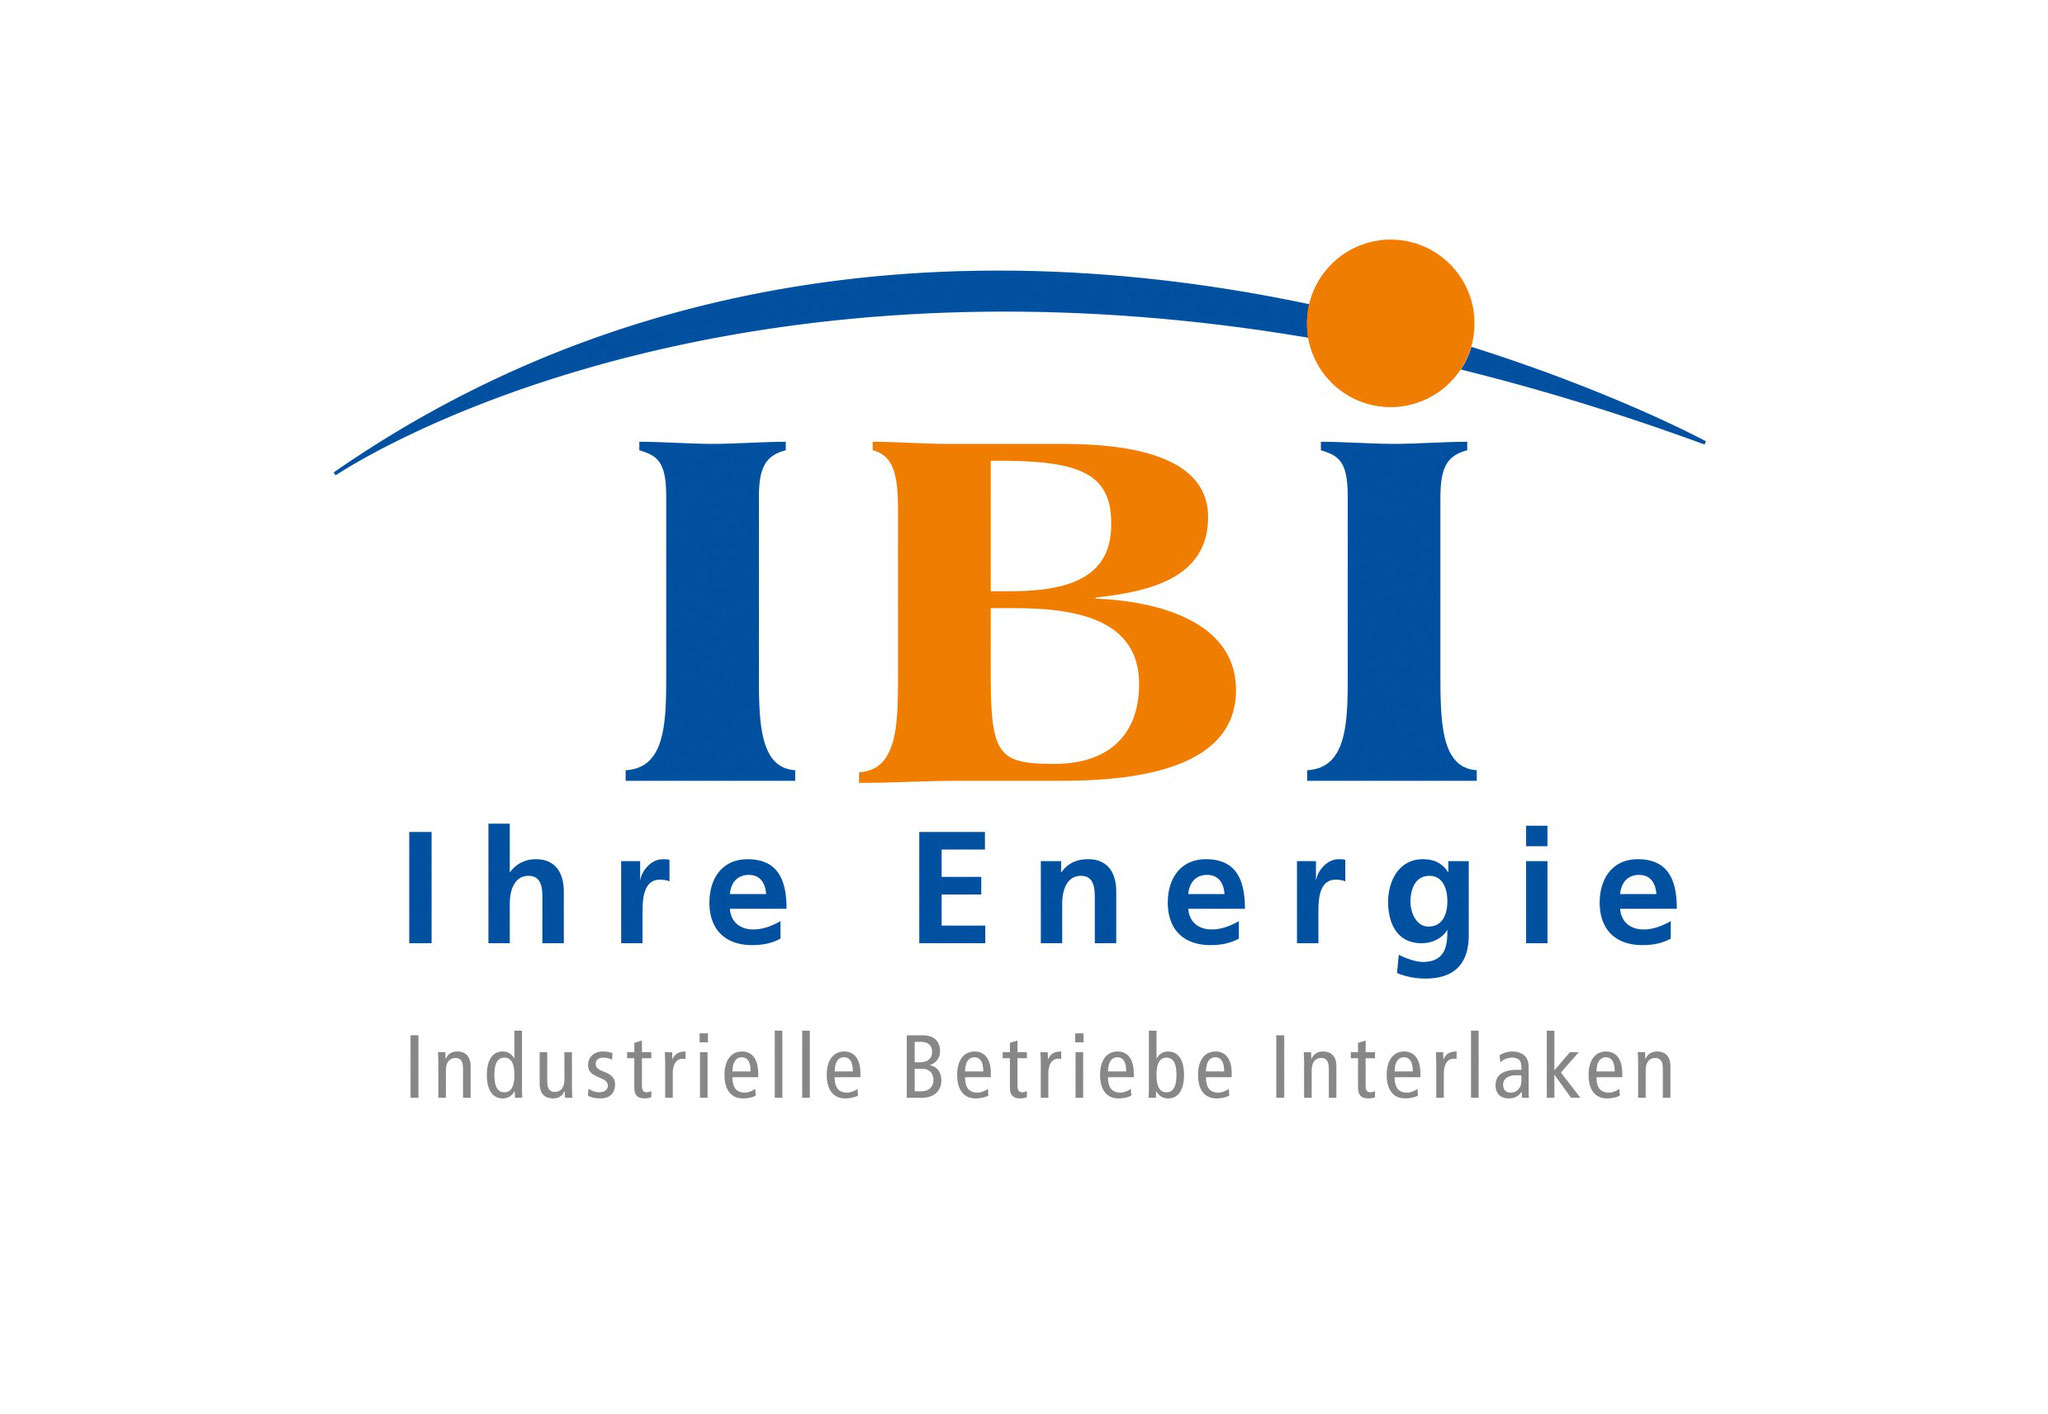 Industrielle Betriebe Interlaken